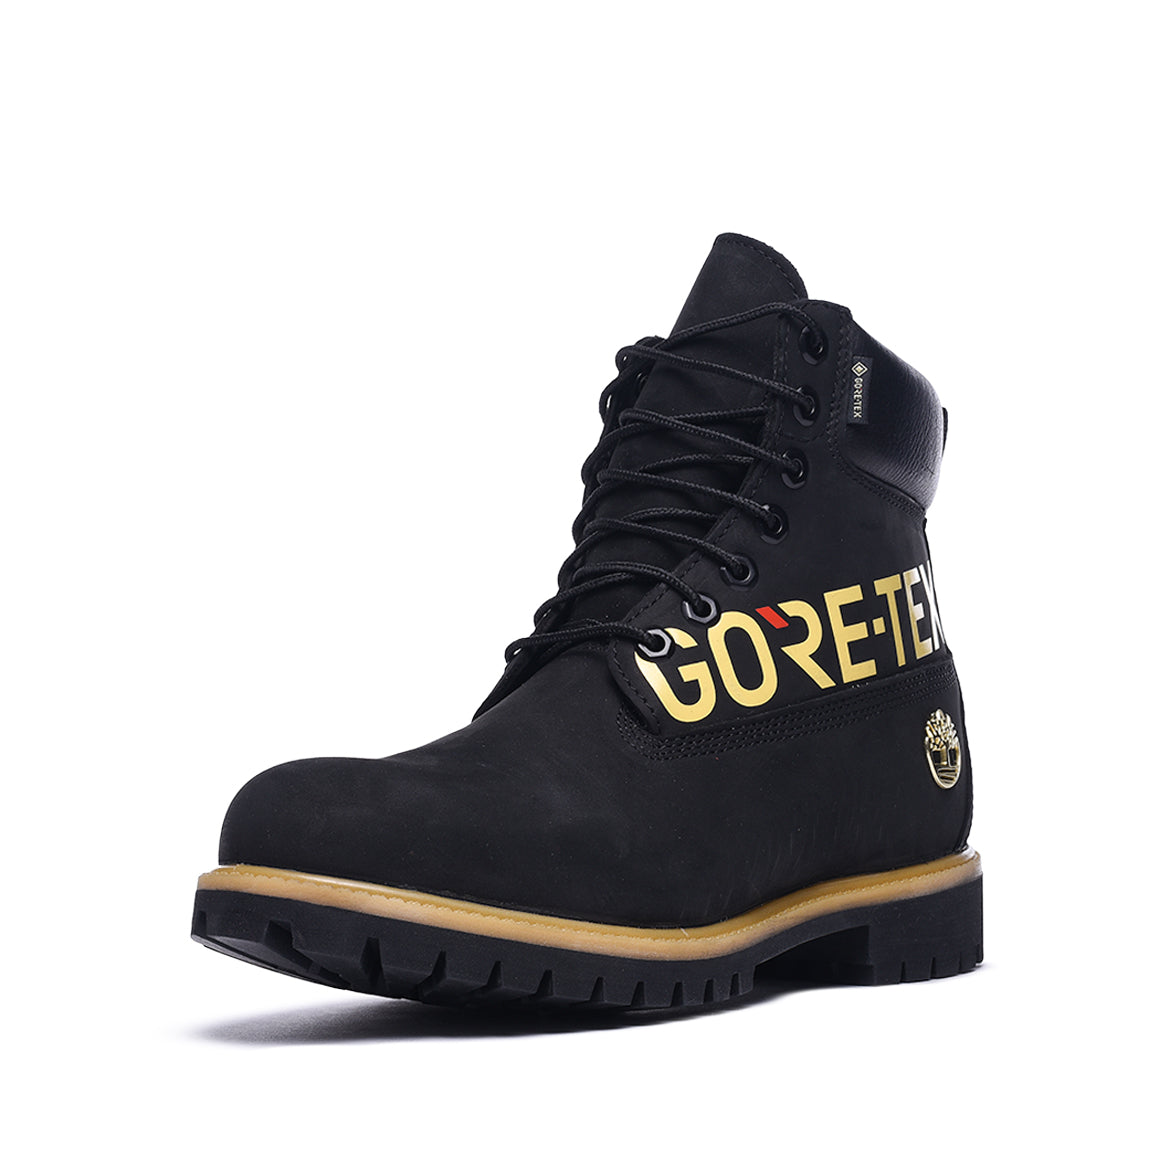 "6"" PREMIUM GORE-TEX BOOT - BLACK"